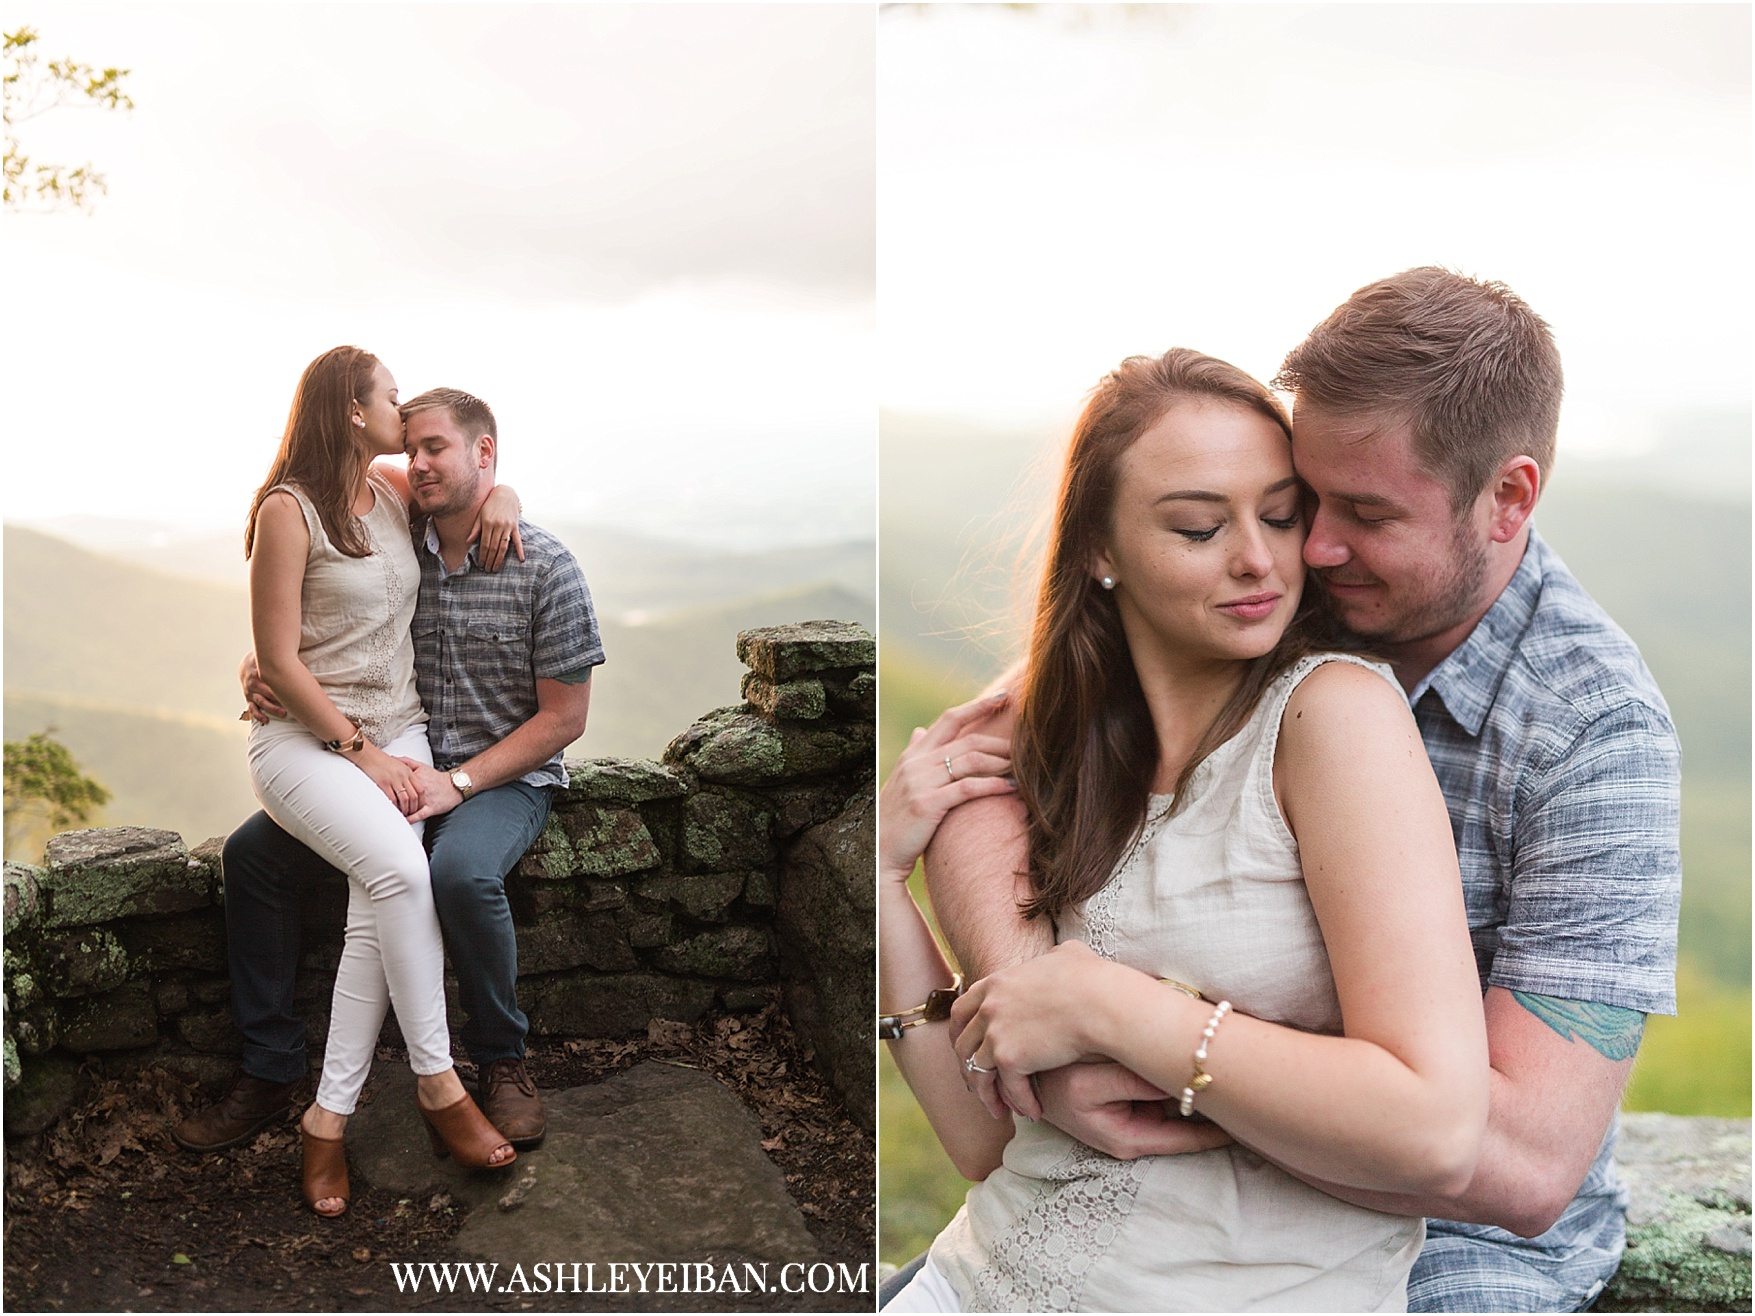 Mountaintop Engagement Session || Lynchburg Wedding and Engagement Photographer || www.ashleyeiban.com